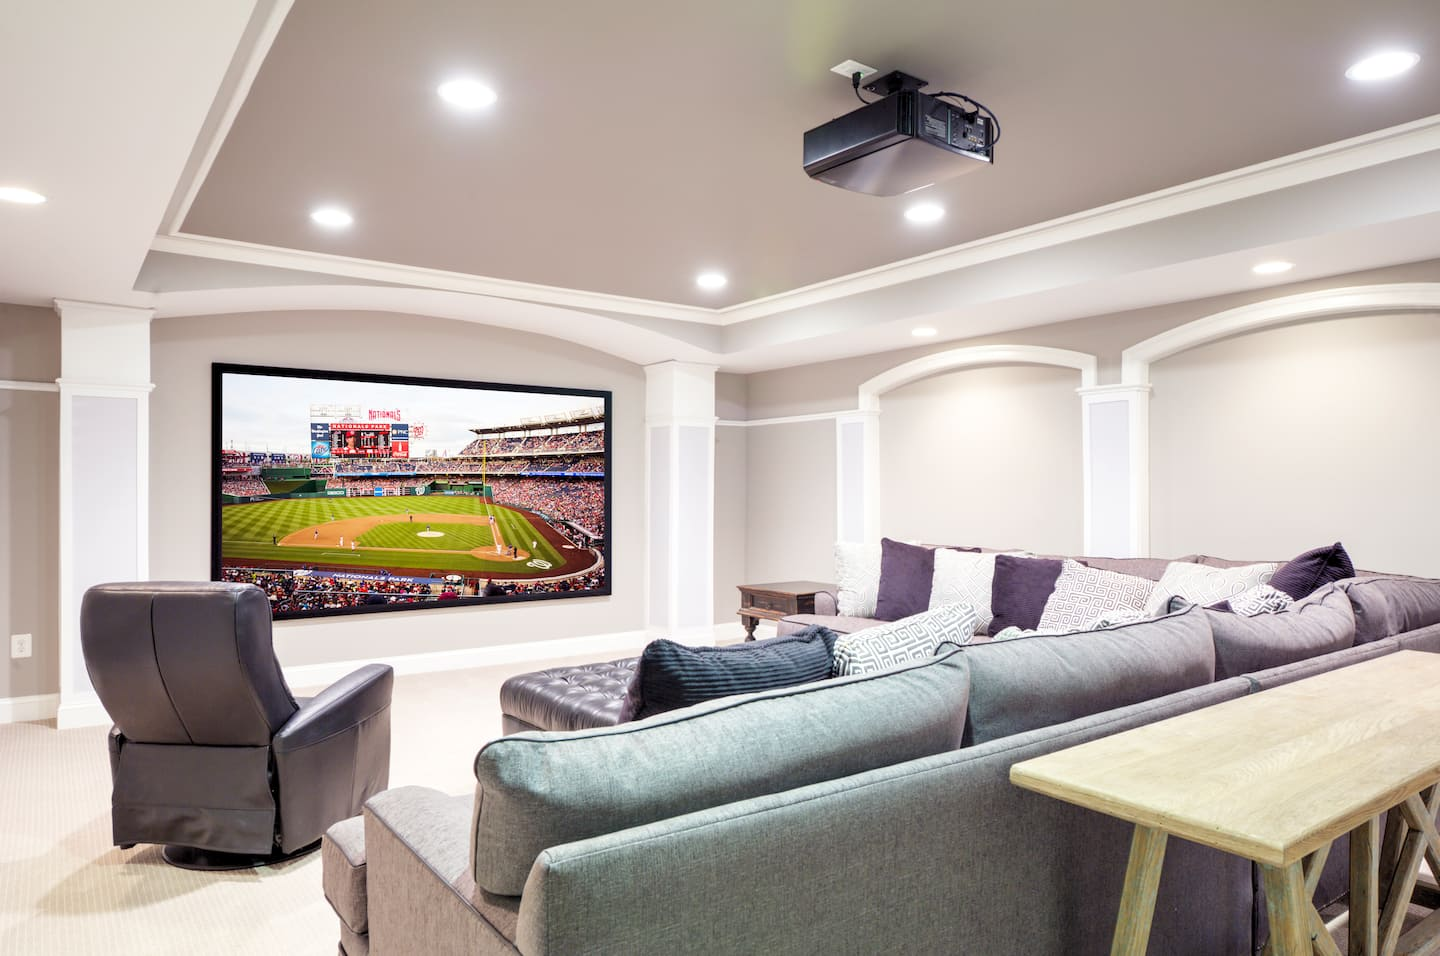 Finished basements are a large part of our business often featuring - Turn Your Basement Into A Home Theater Or Get Inspired With Other Outstanding Basement Ideas